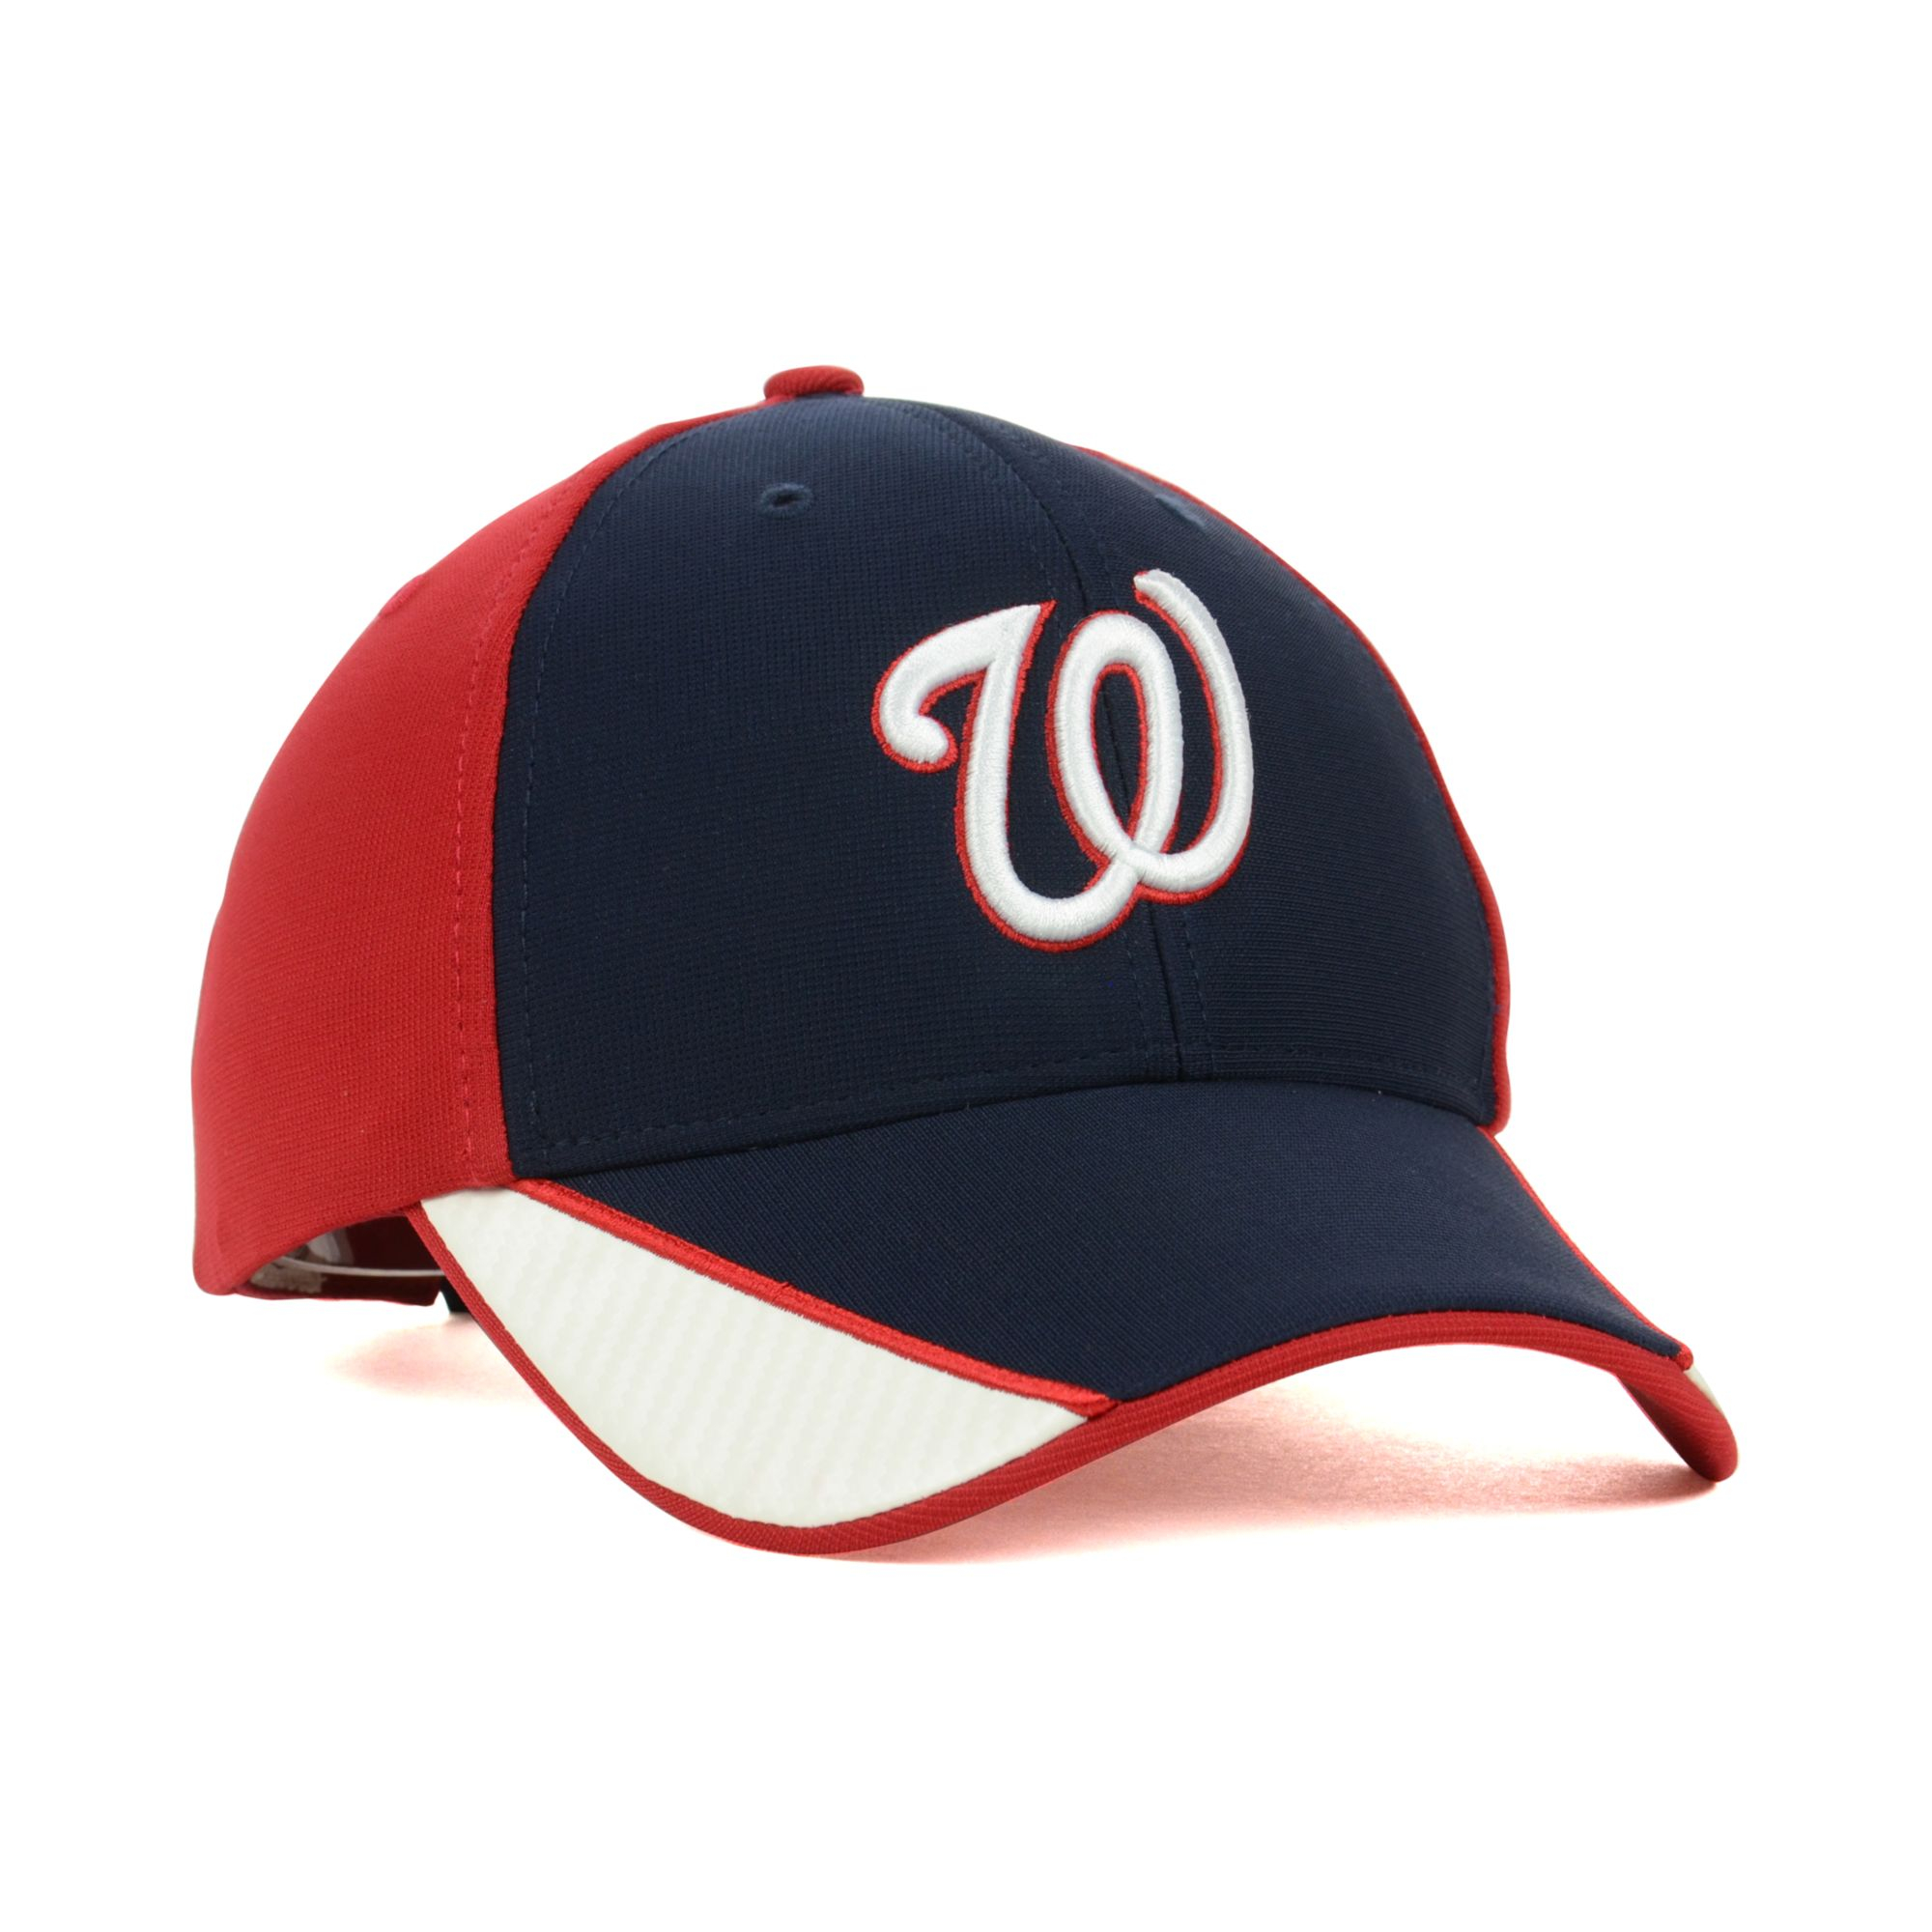 separation shoes 0683a 501ed ... discount code for lyst 47 brand washington nationals mlb coldstrom cap  in blue for men f50b0